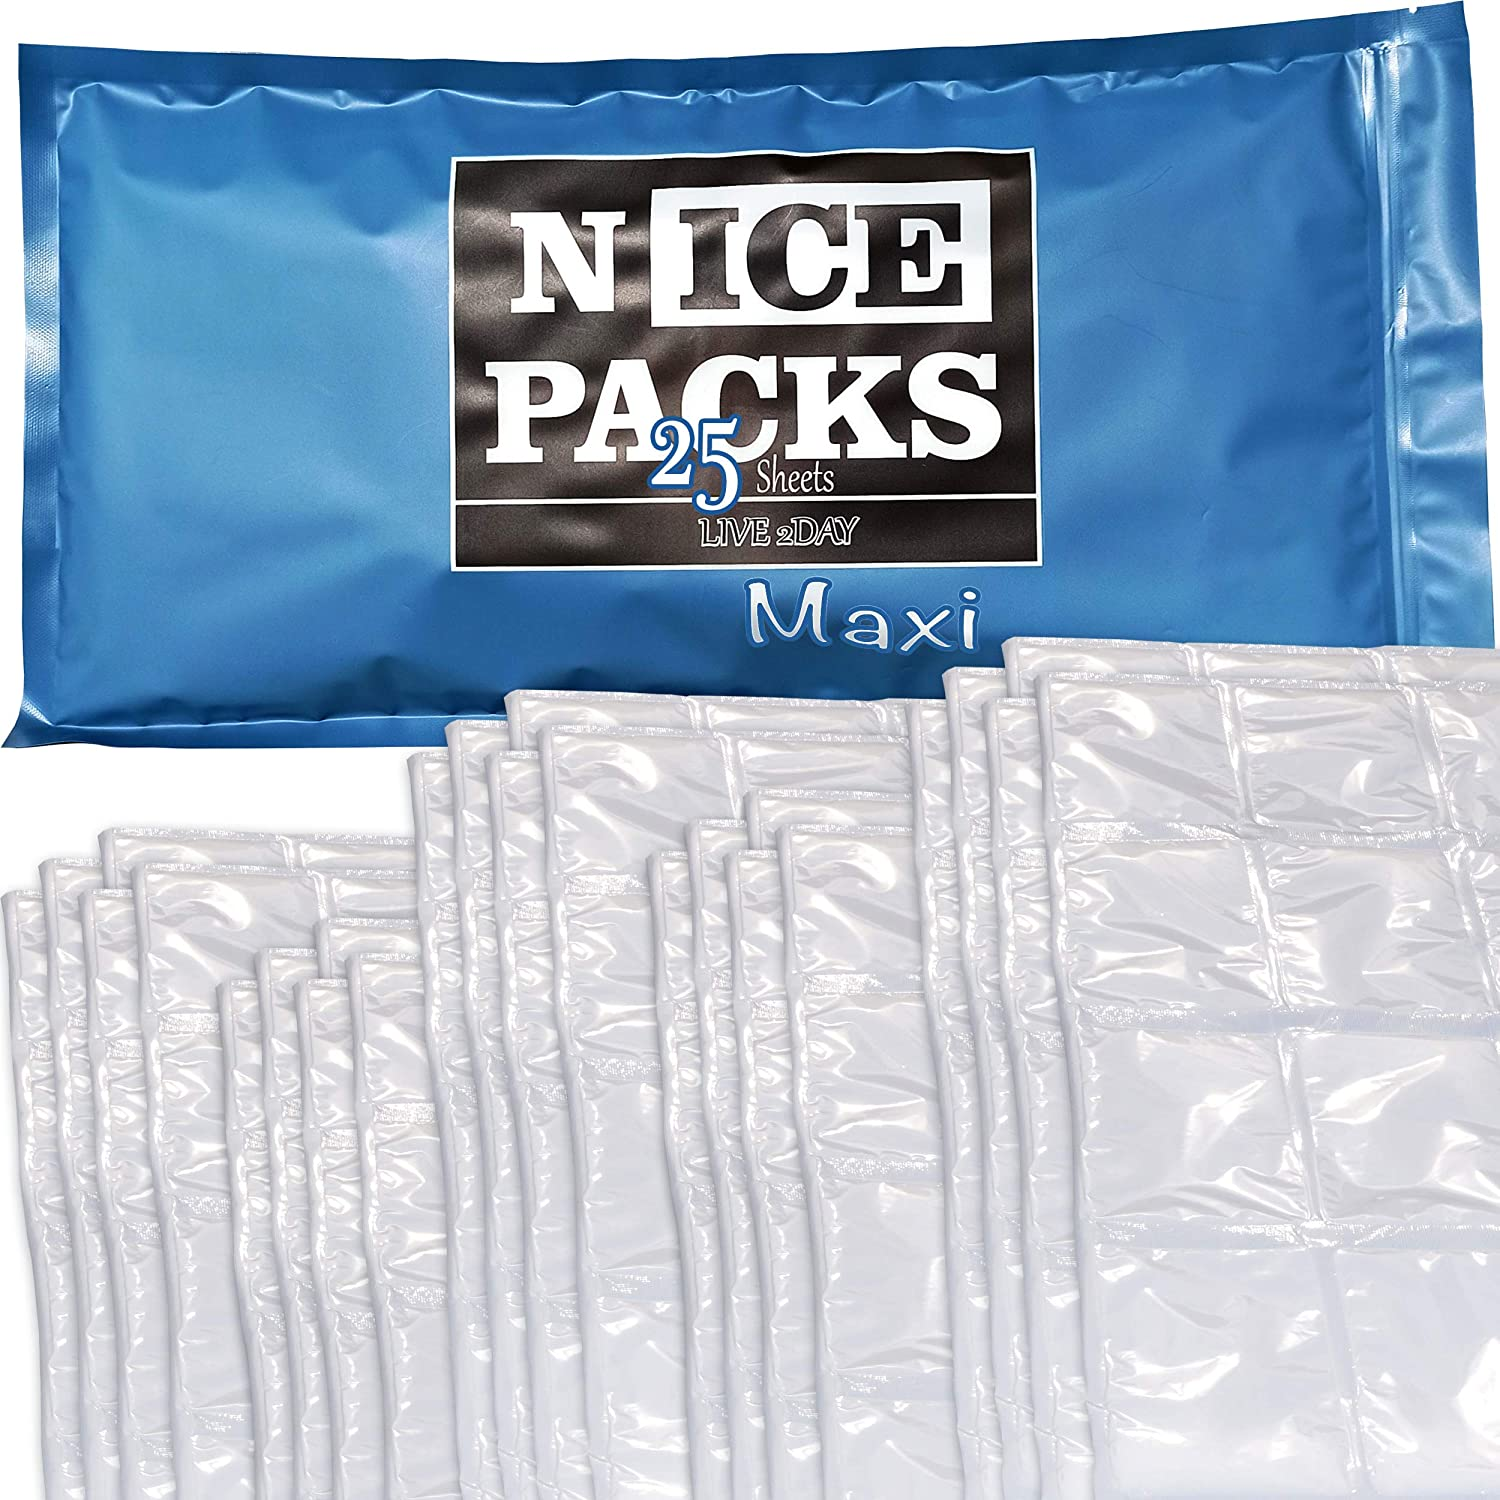 LIVE 2DAY Dry Ice Packs for Coolers – Lunch Box Ice Packs – Dry Ice for Shipping Frozen Food – Ice Packs for Kids Lunch Bags – Reusable Nice Packs – 25 Large Sheets – Long Lasting - Most Economic Pack